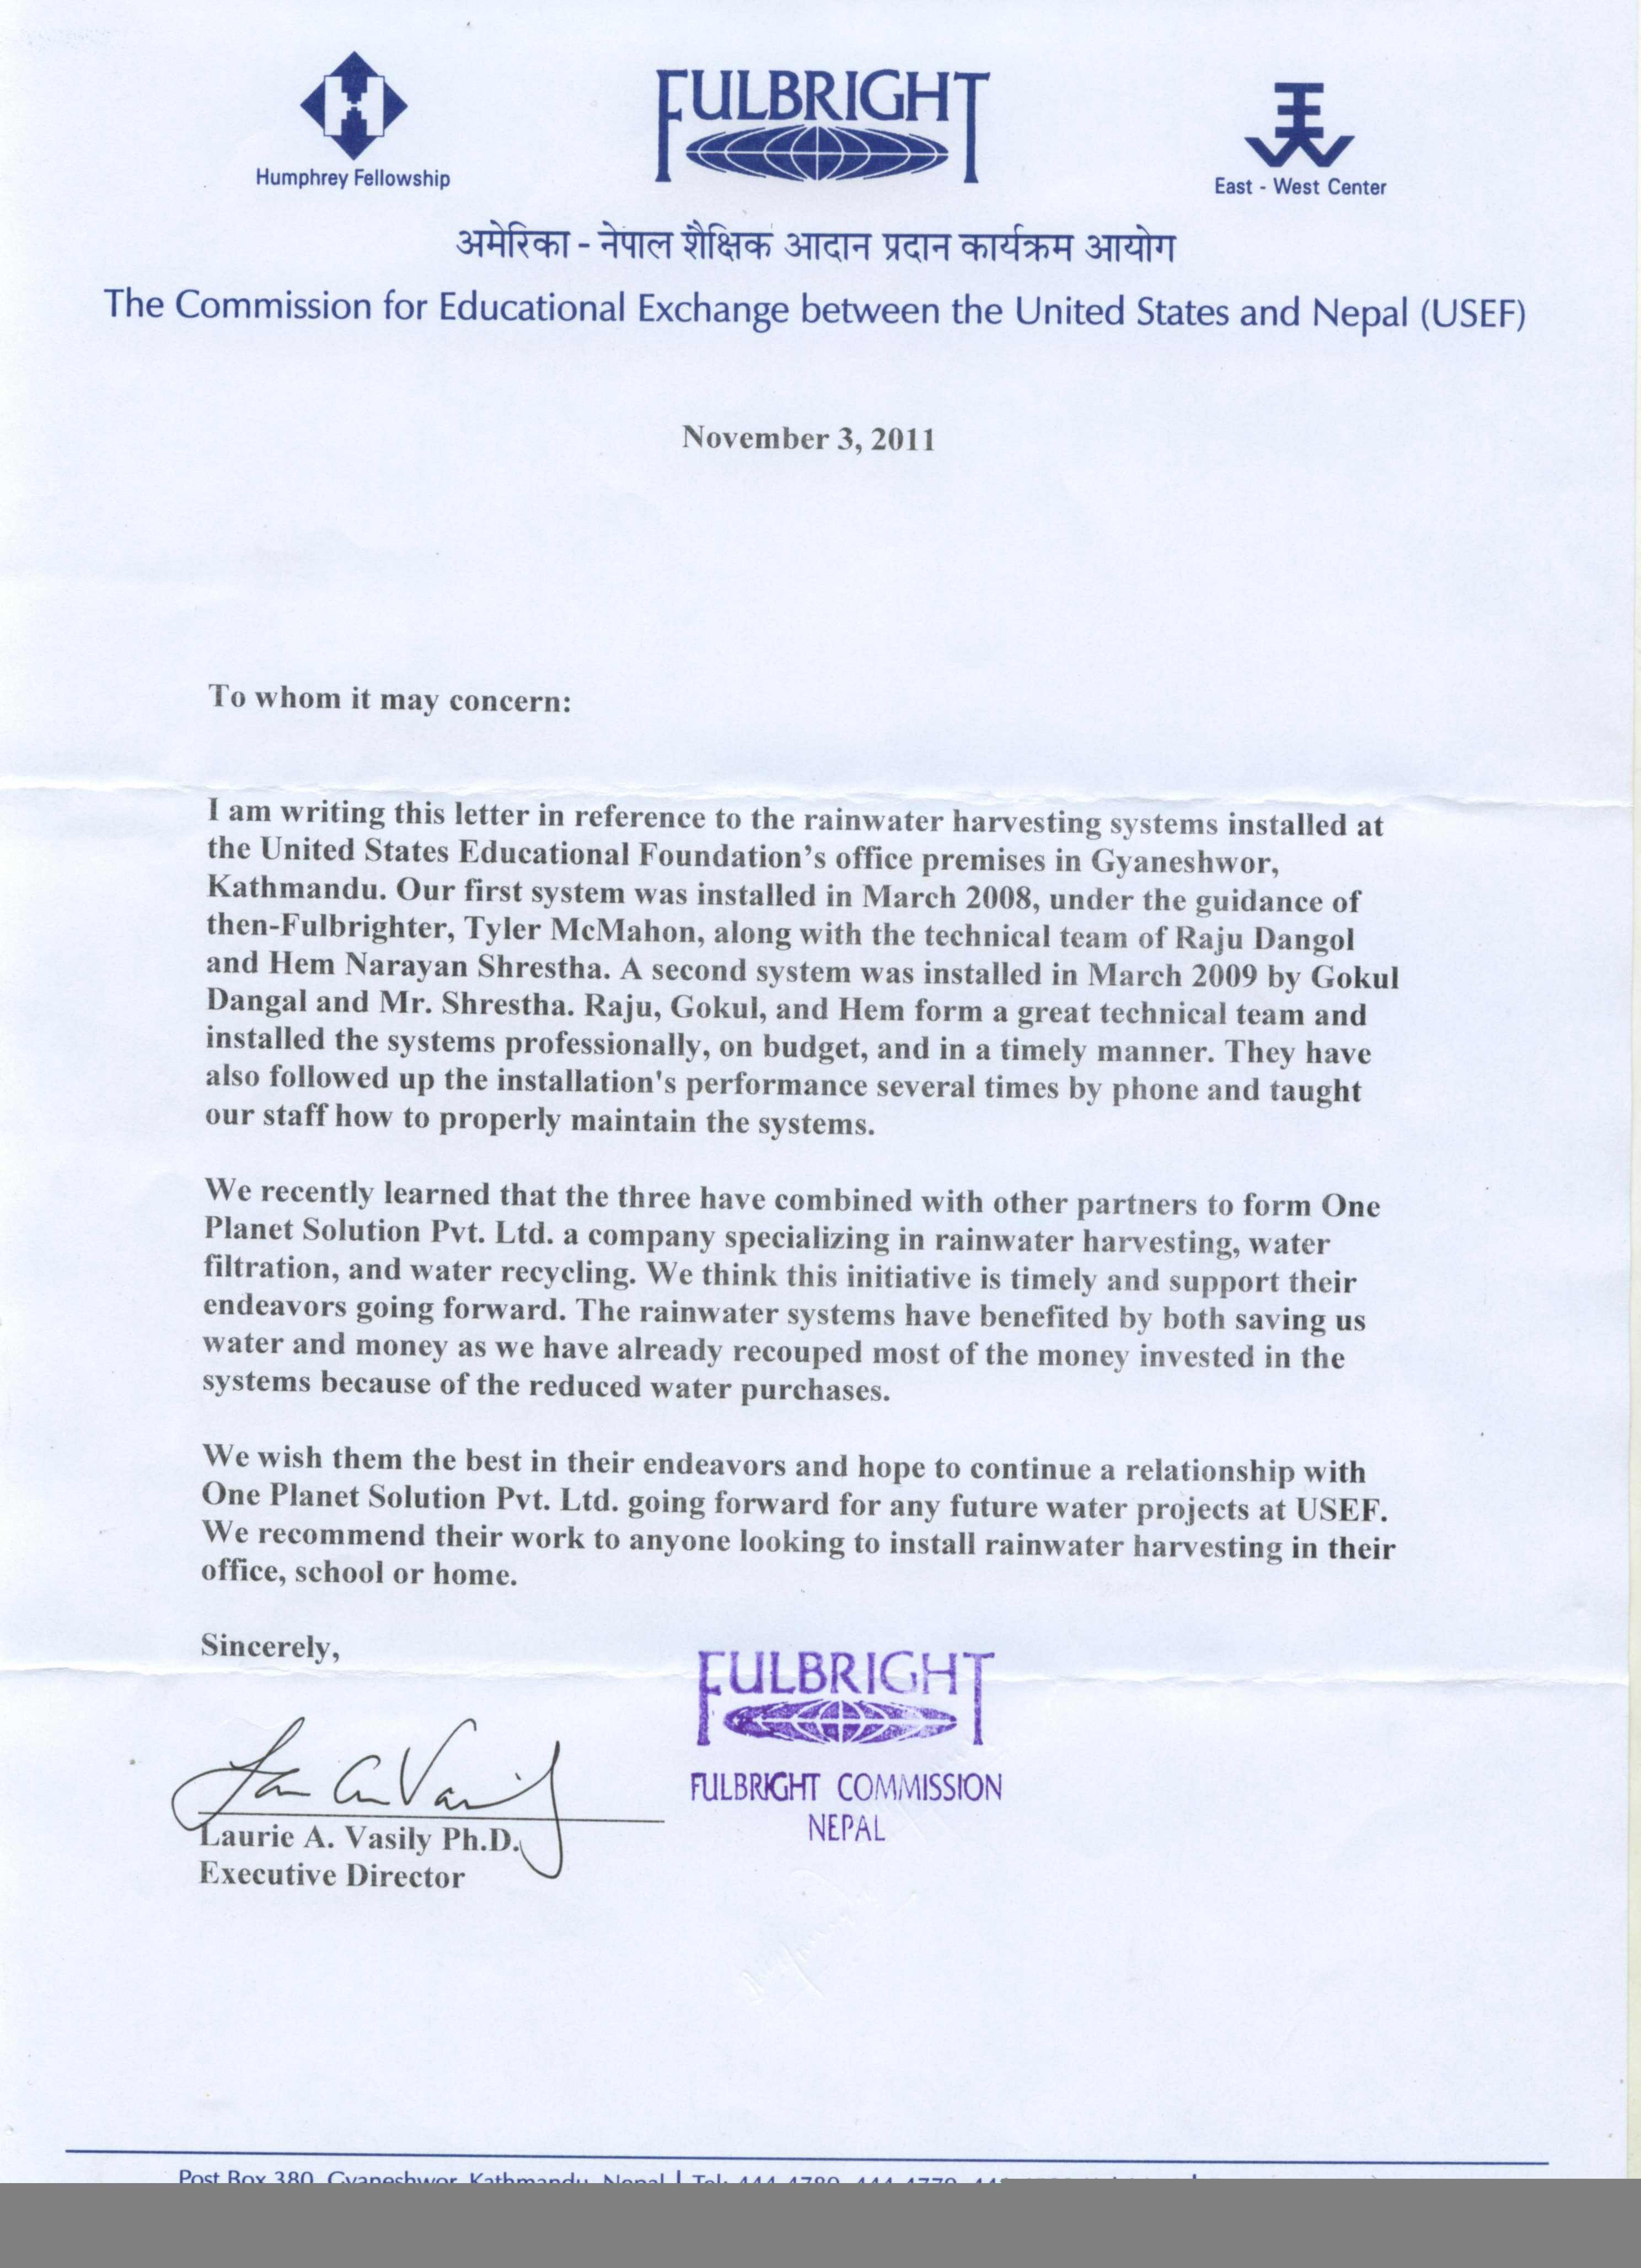 fulbright letter of recommendation sample   Hadi.palmex.co